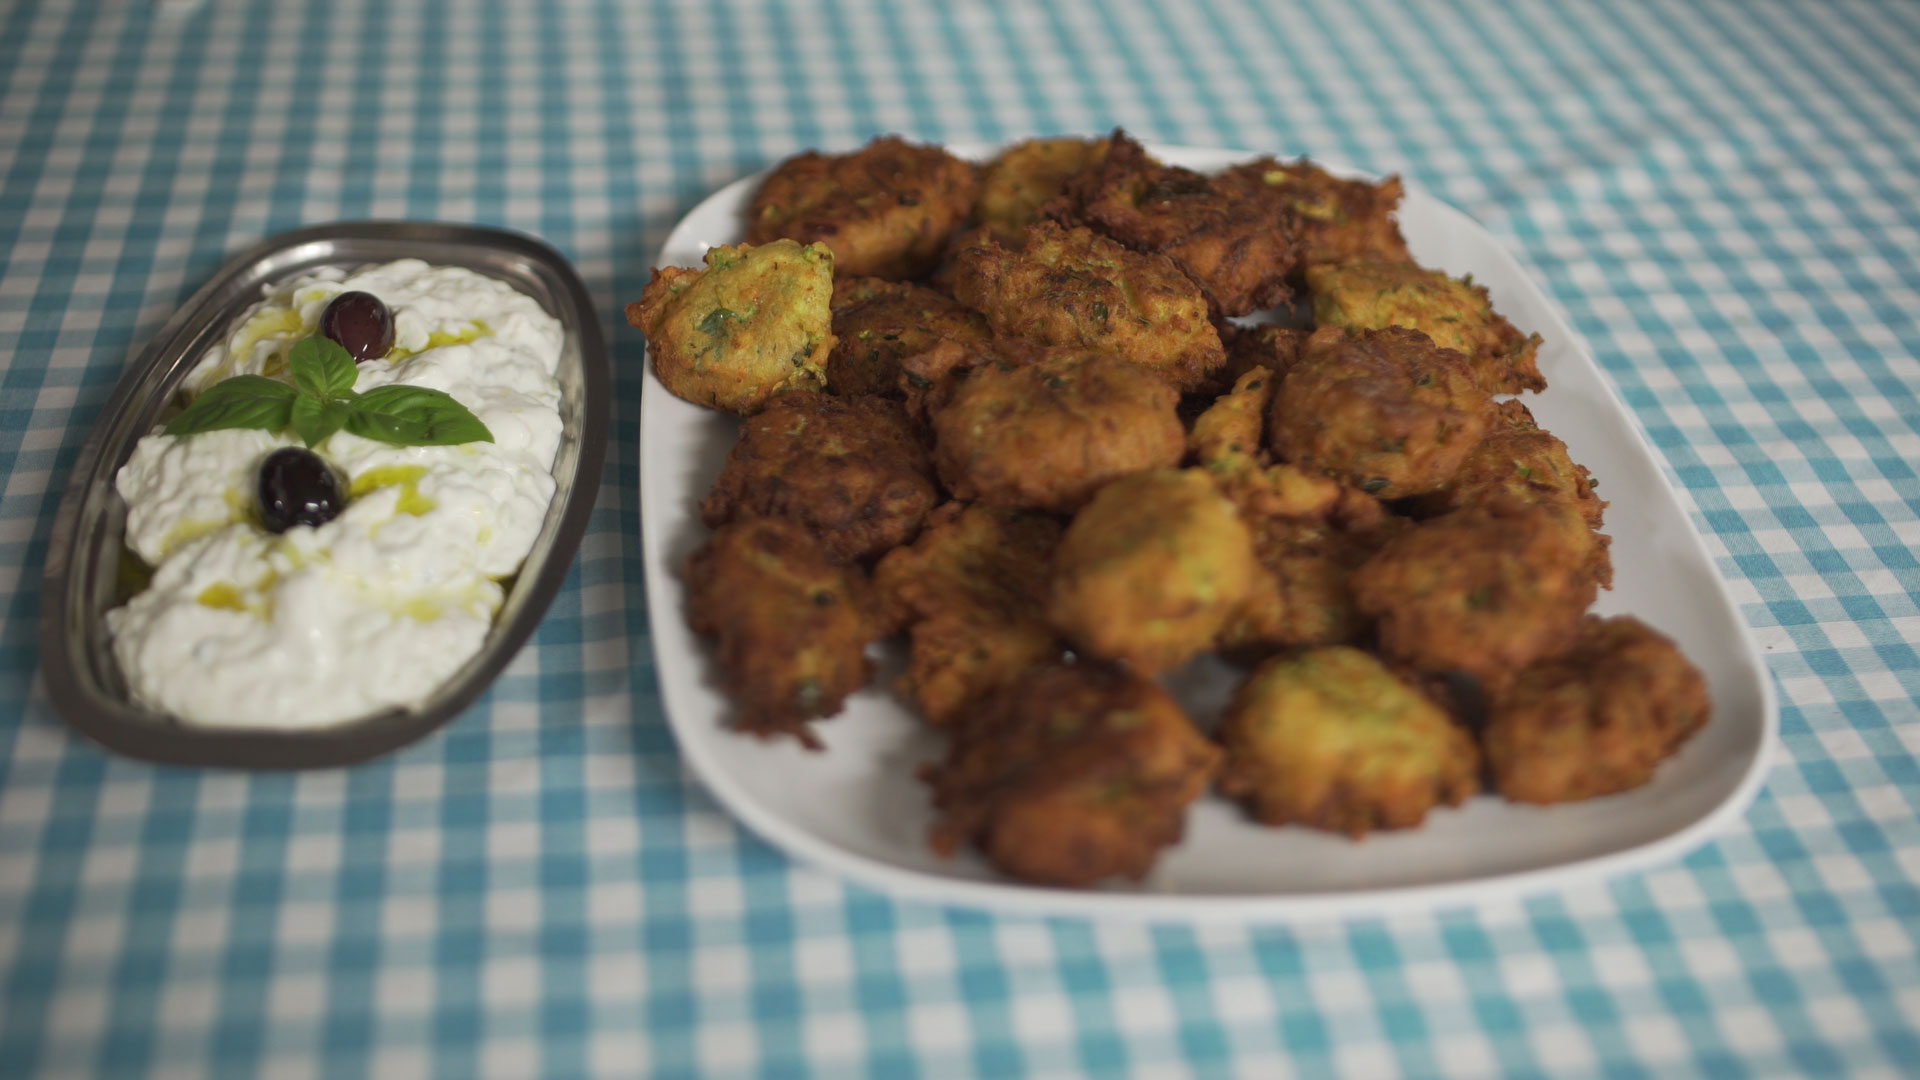 Photo of Zucchini Fritters with Tzatziki on plaid tablecloth